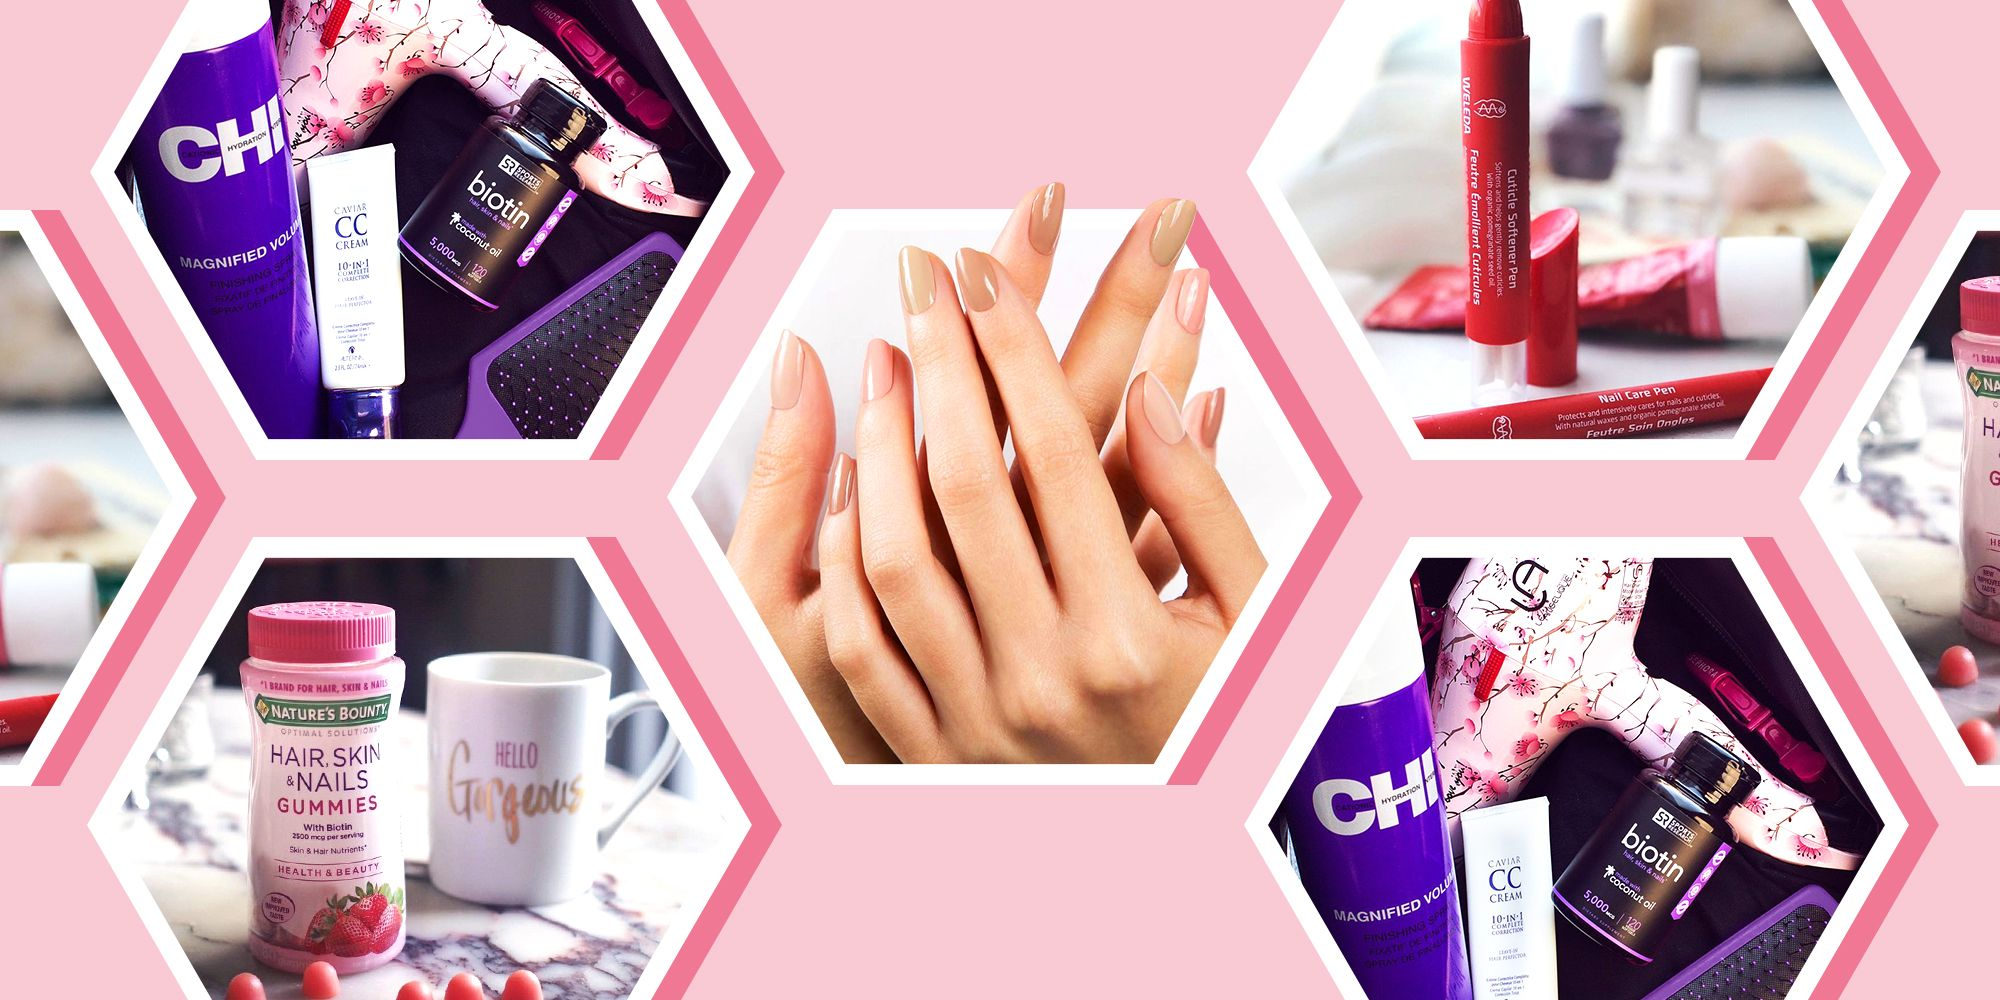 9 Best Nail Strengtheners You Need in 2018 - Nail Strengthening Vitamins